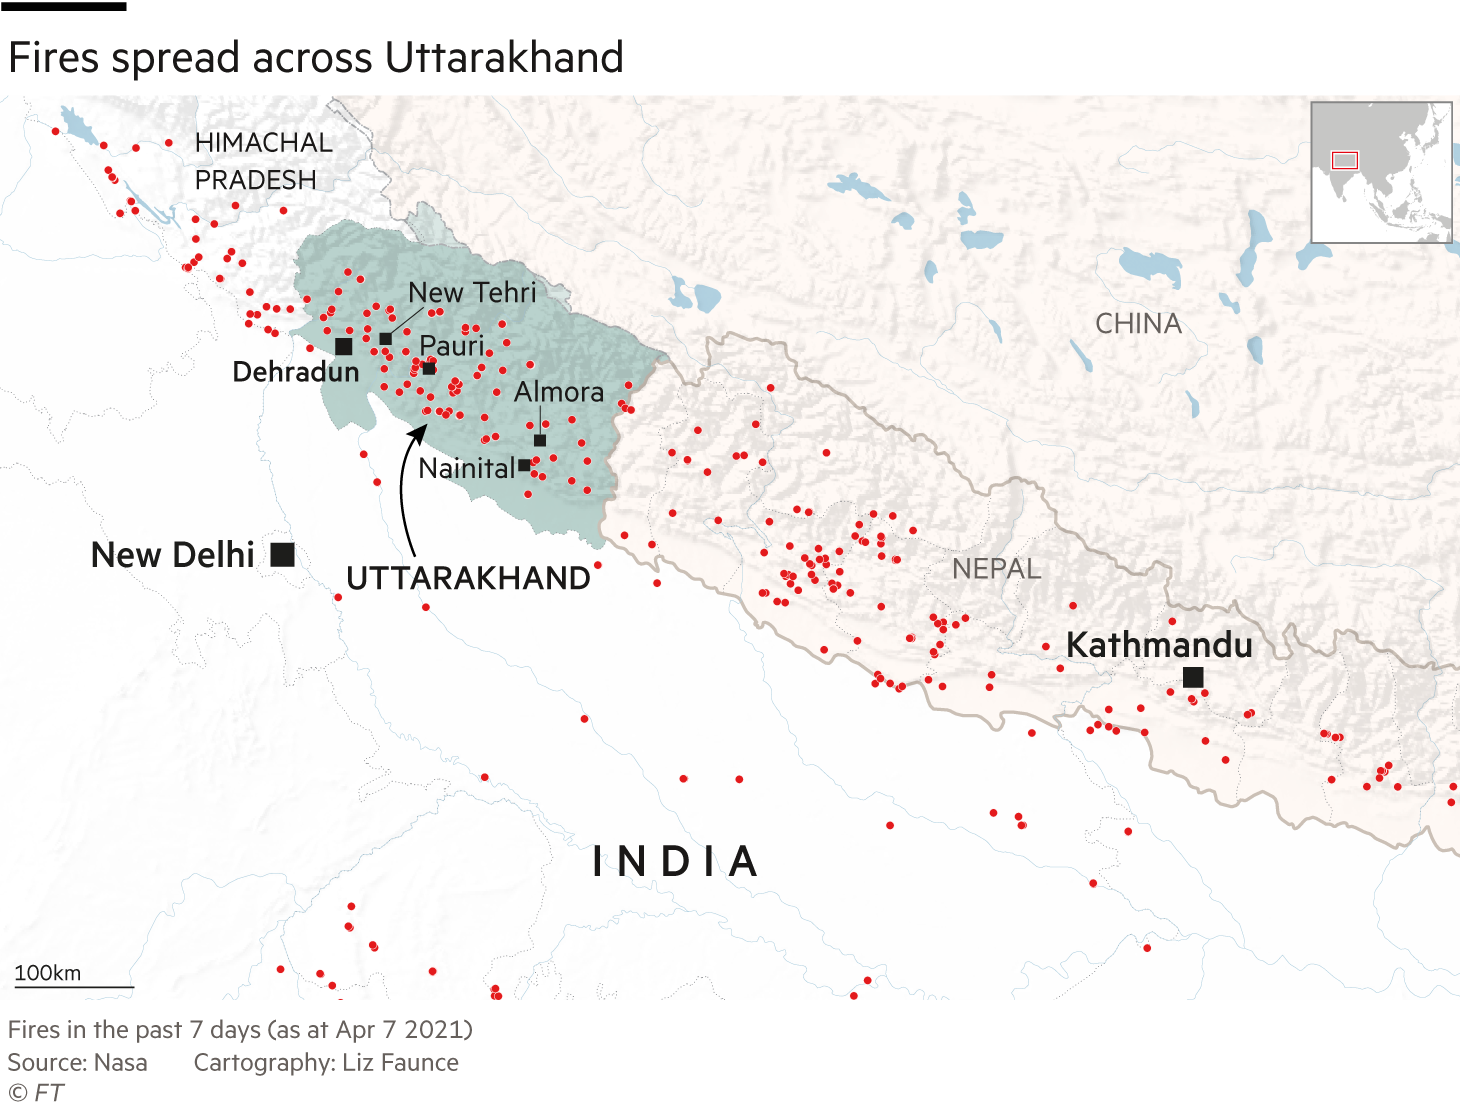 Fires spread across Uttarakhand state in India, climate map